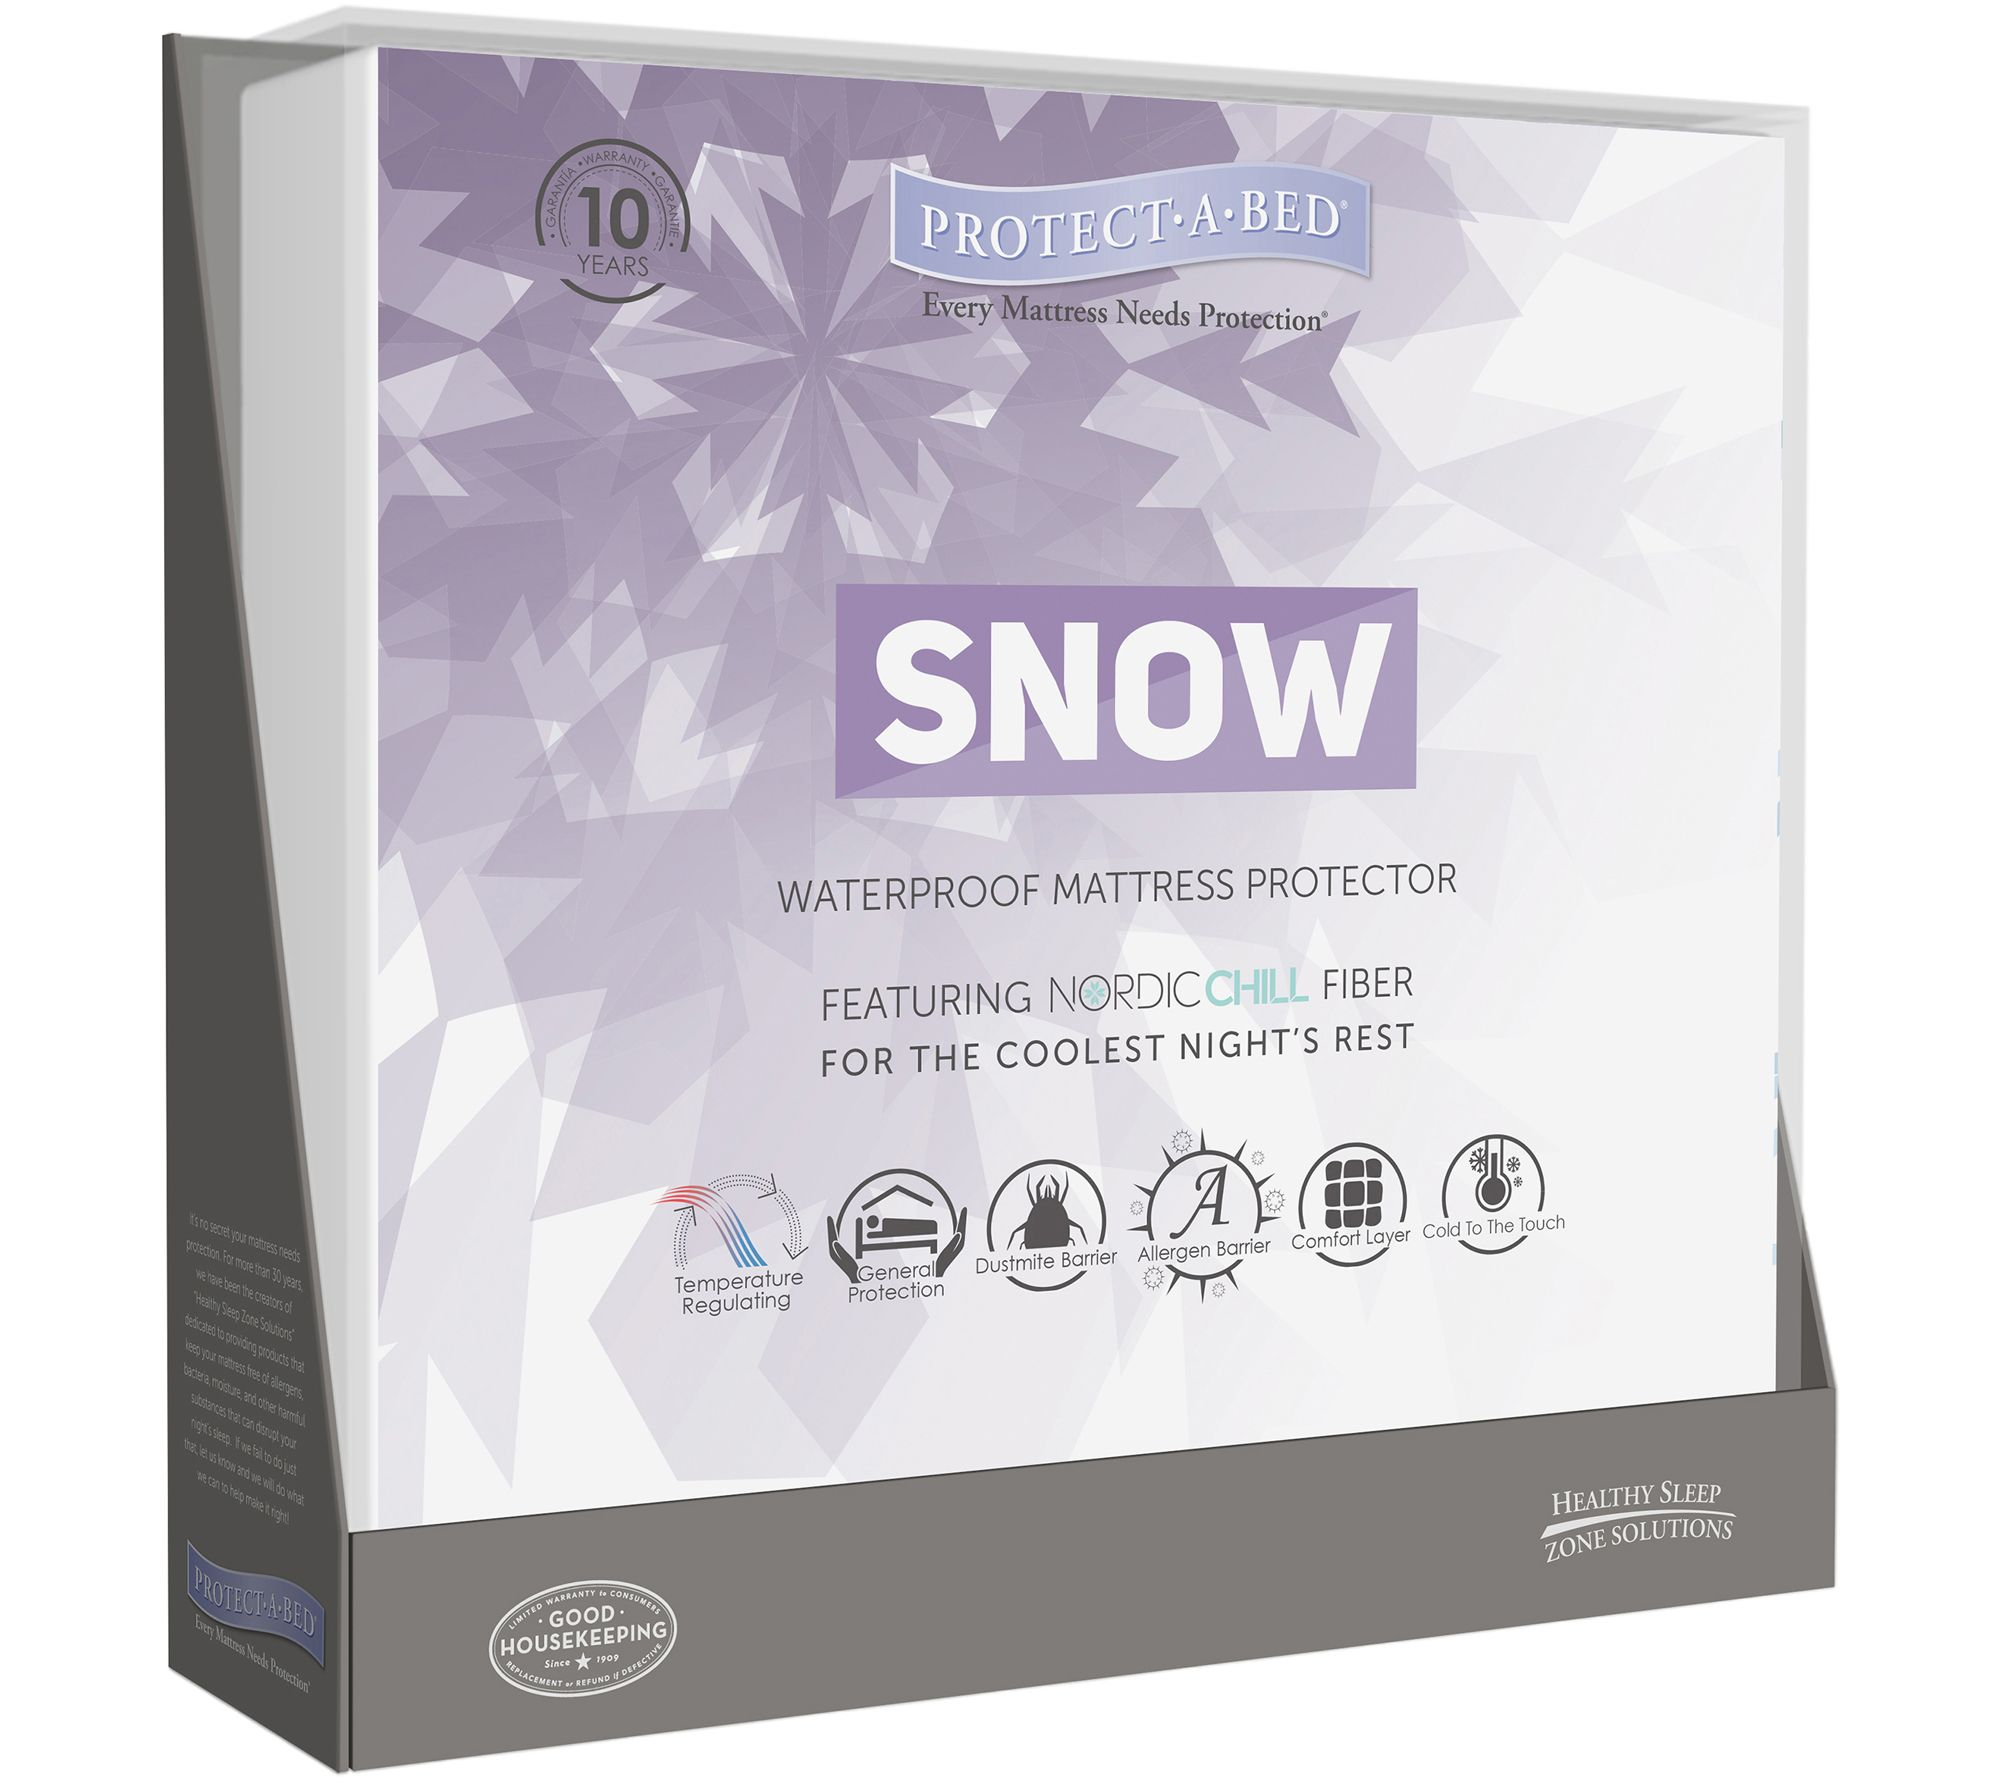 Protect-A-Bed Therm-A-Sleep Snow Full MattressProtector - H289405